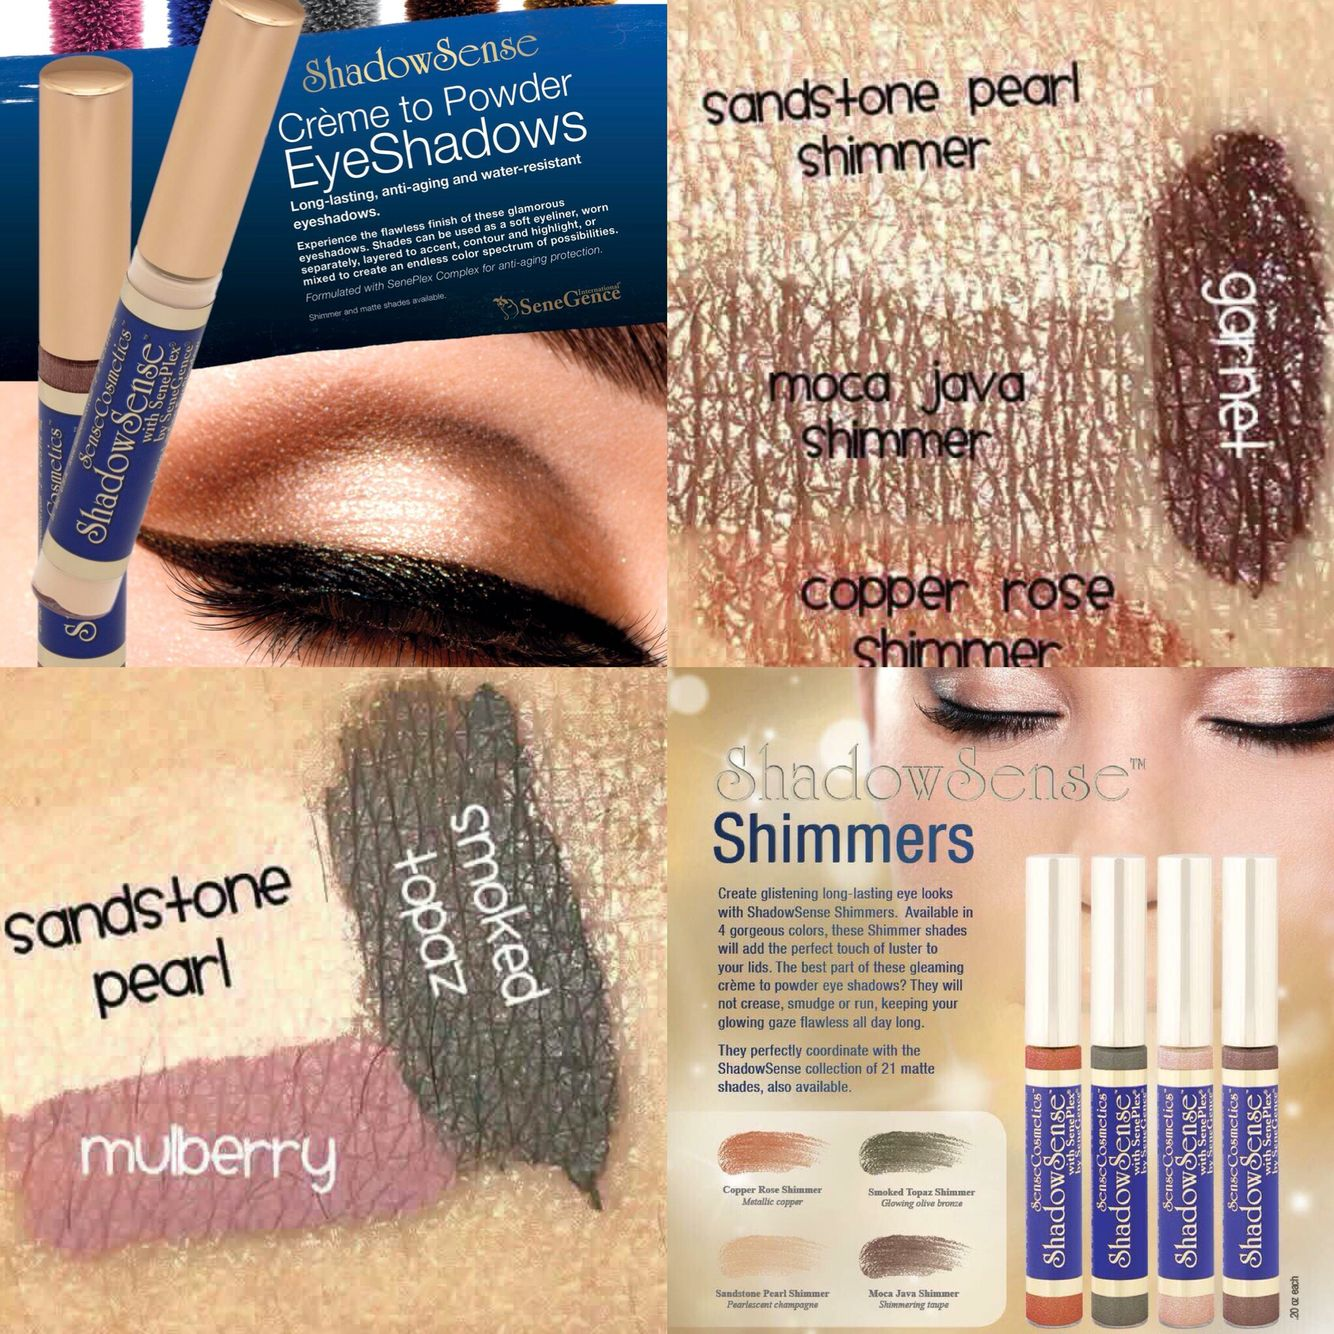 Senegence #shadowsense Creme To Powder Eyeshadow Is Amazing! It Blends So  Easily And Its